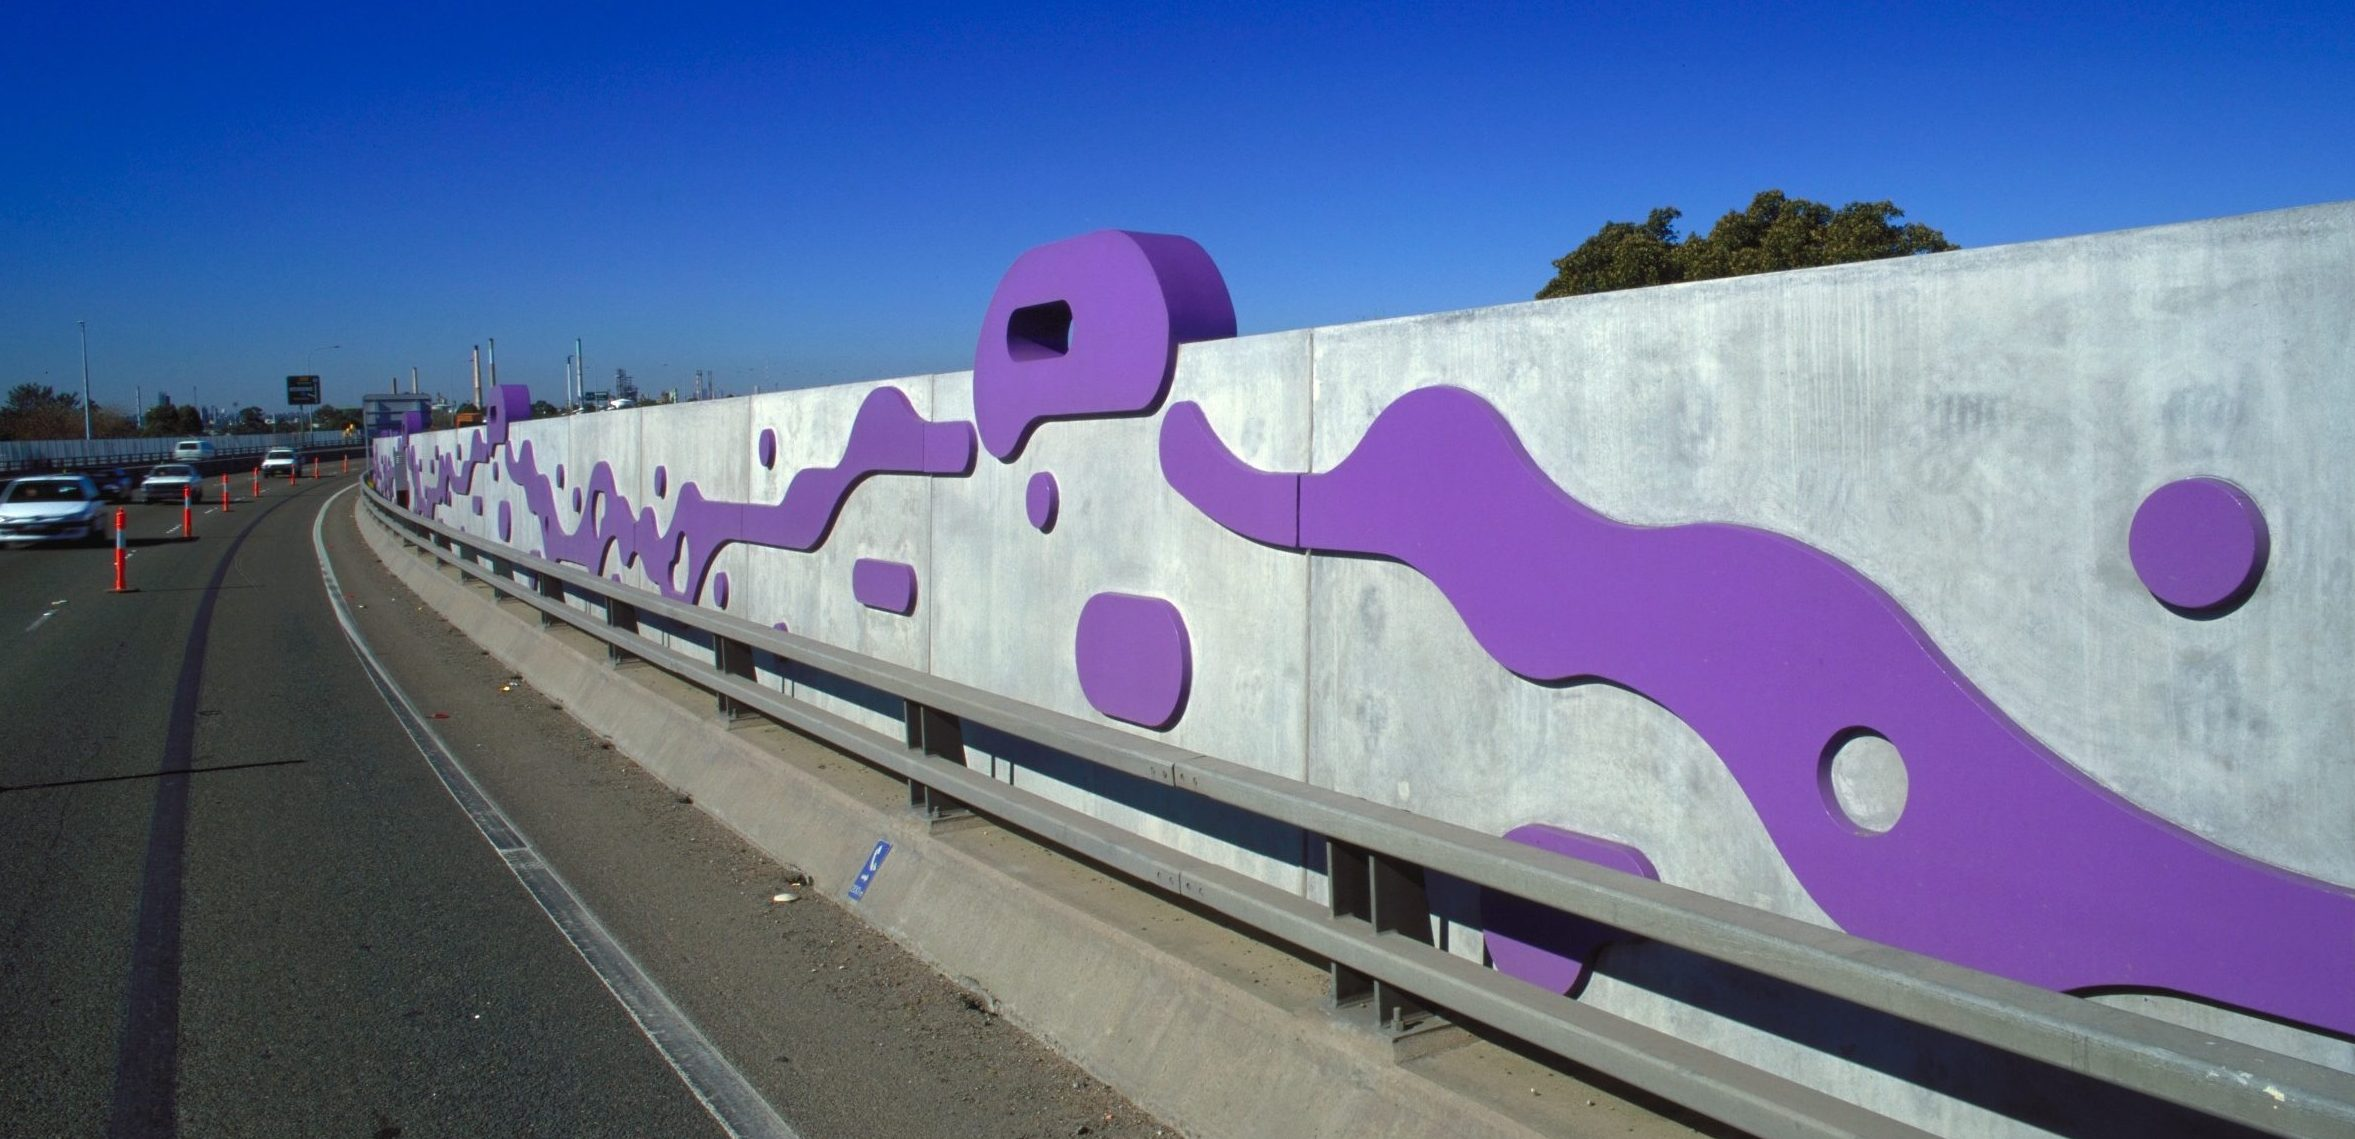 Noise barriers on a bridge, Australia